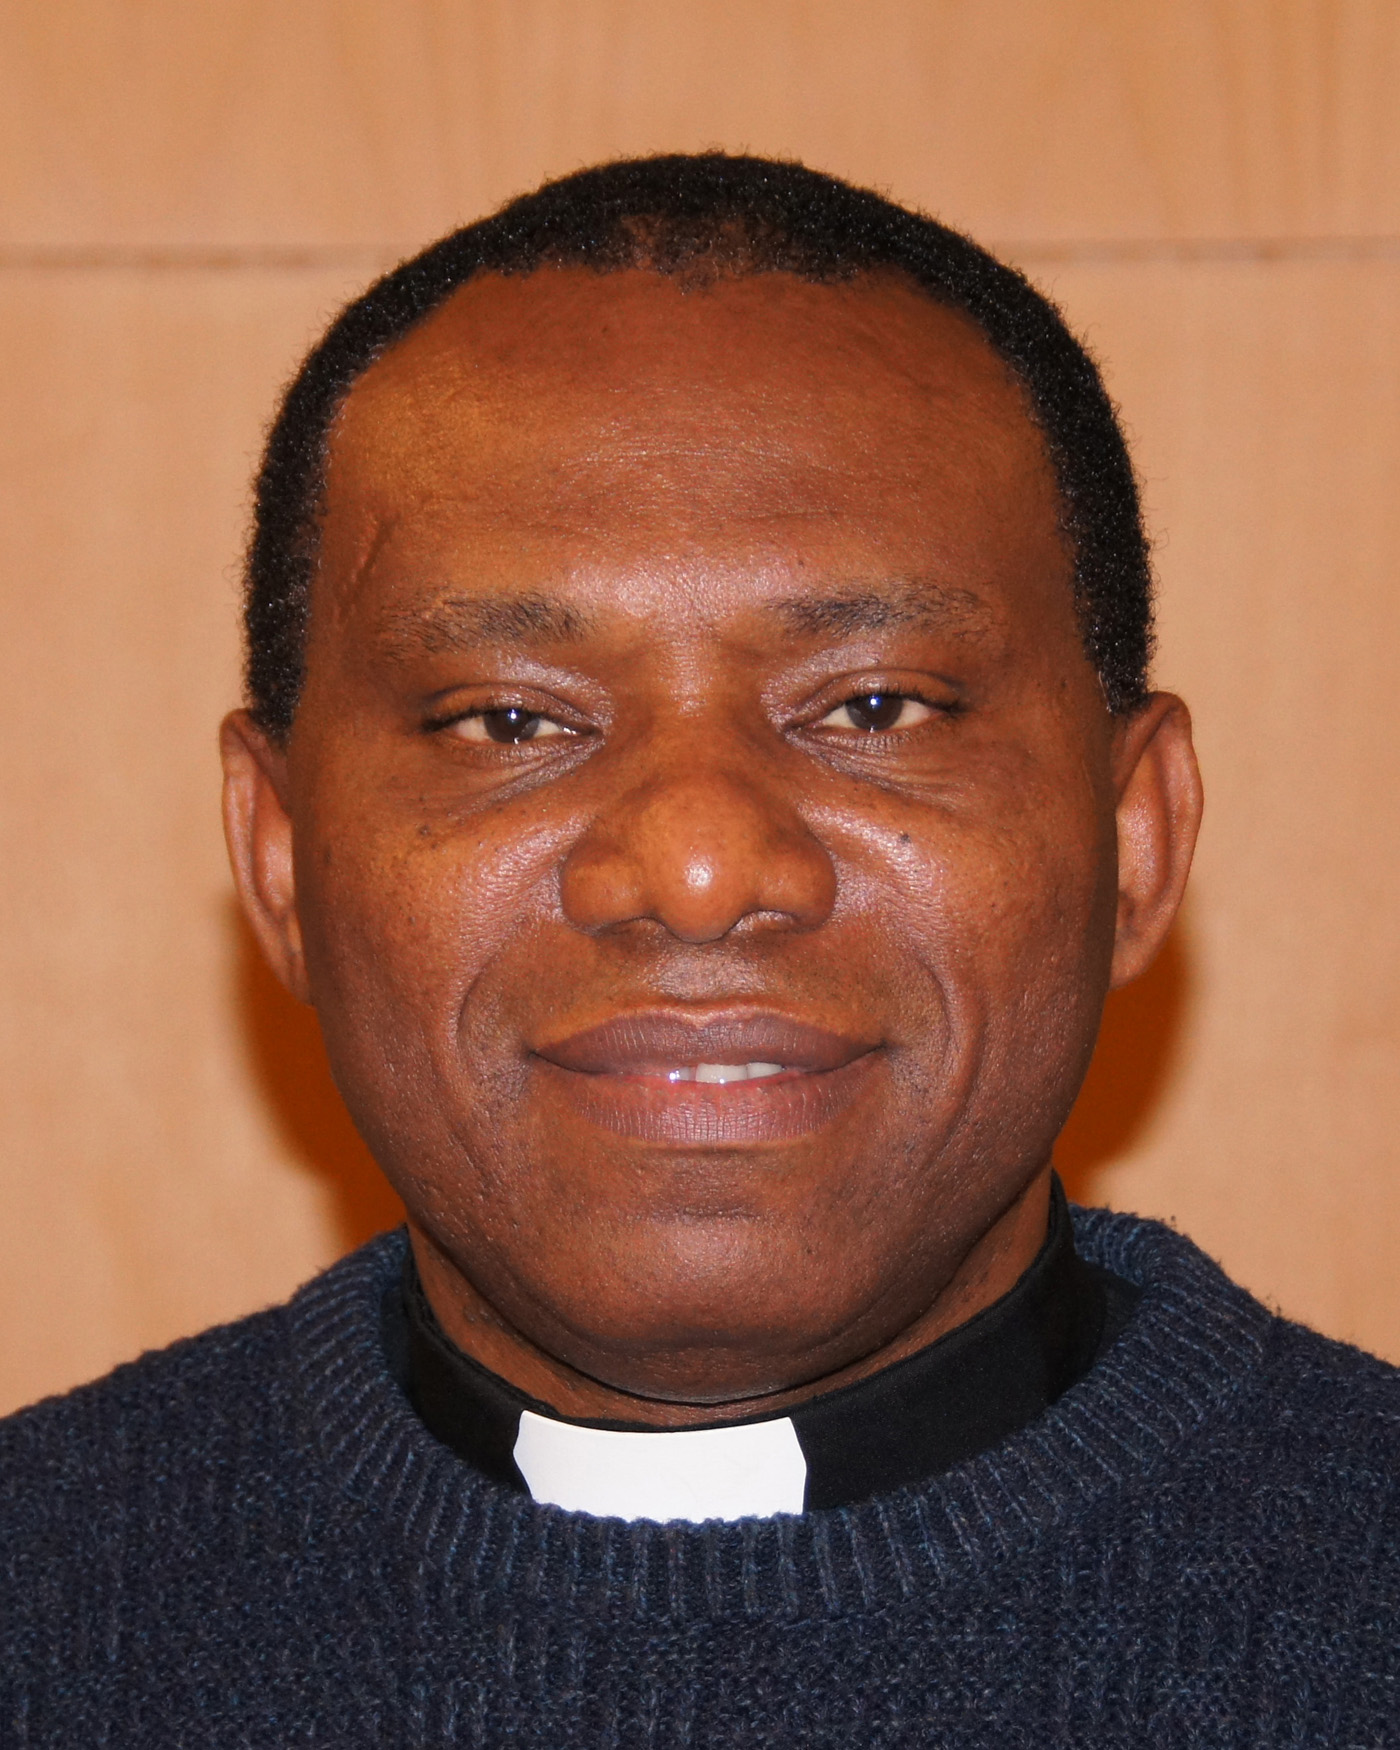 Father Uche Njoku